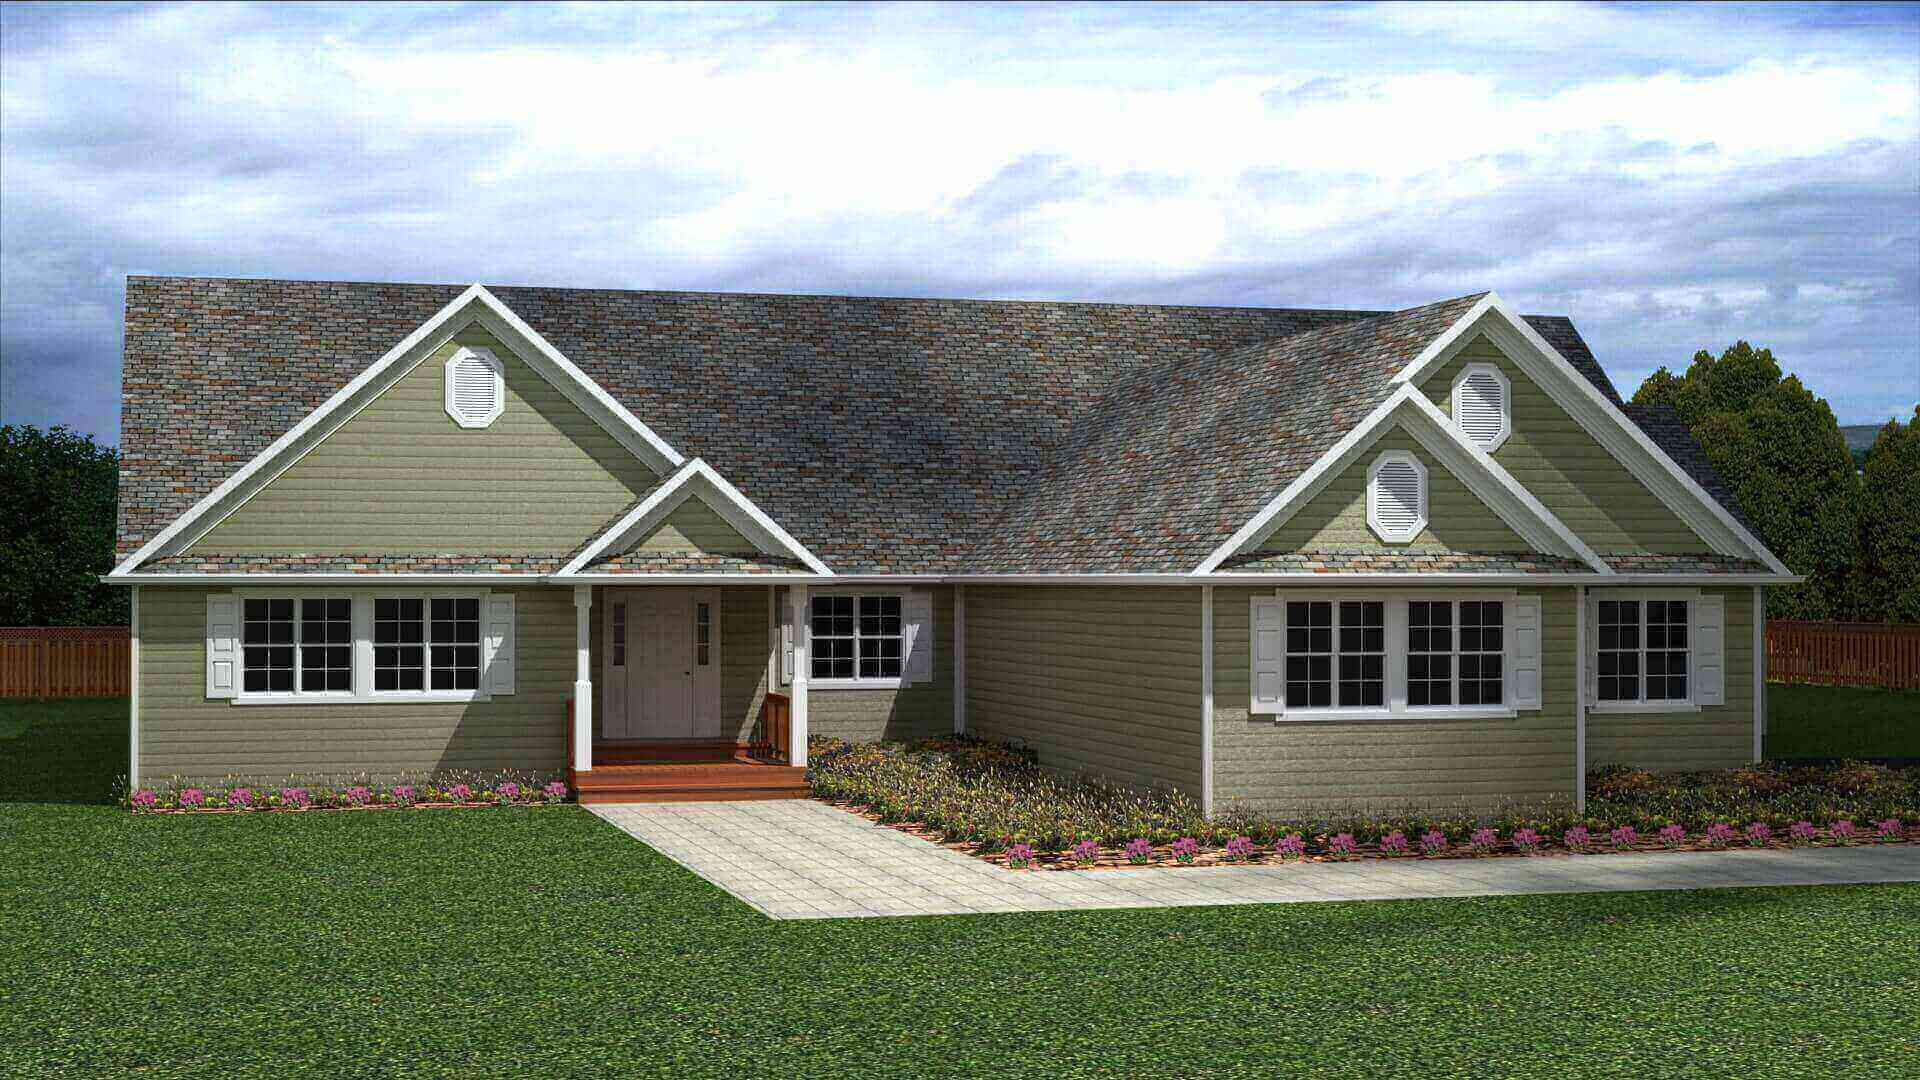 3817 sq.ft. timber mart house exterior rendering